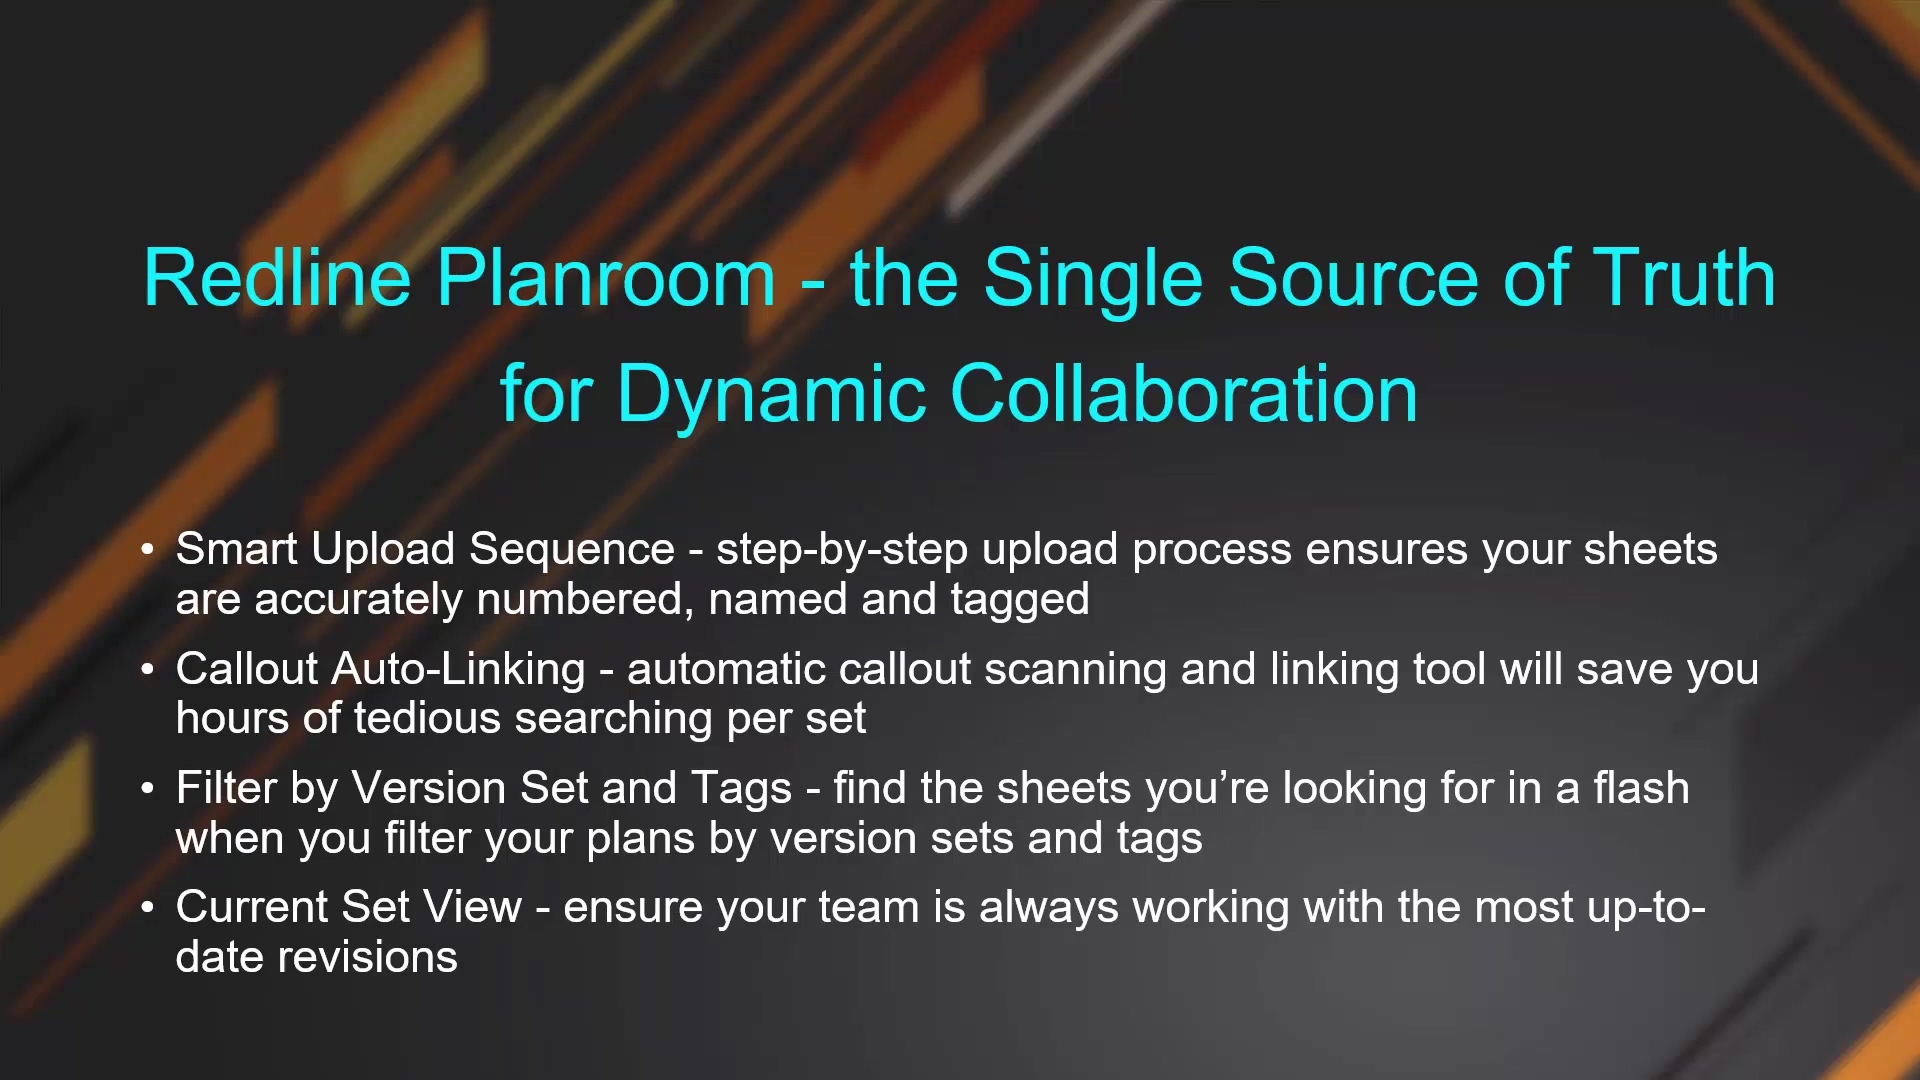 Redline Planroom - the Single Source of Truth for Dynamic Collaboration